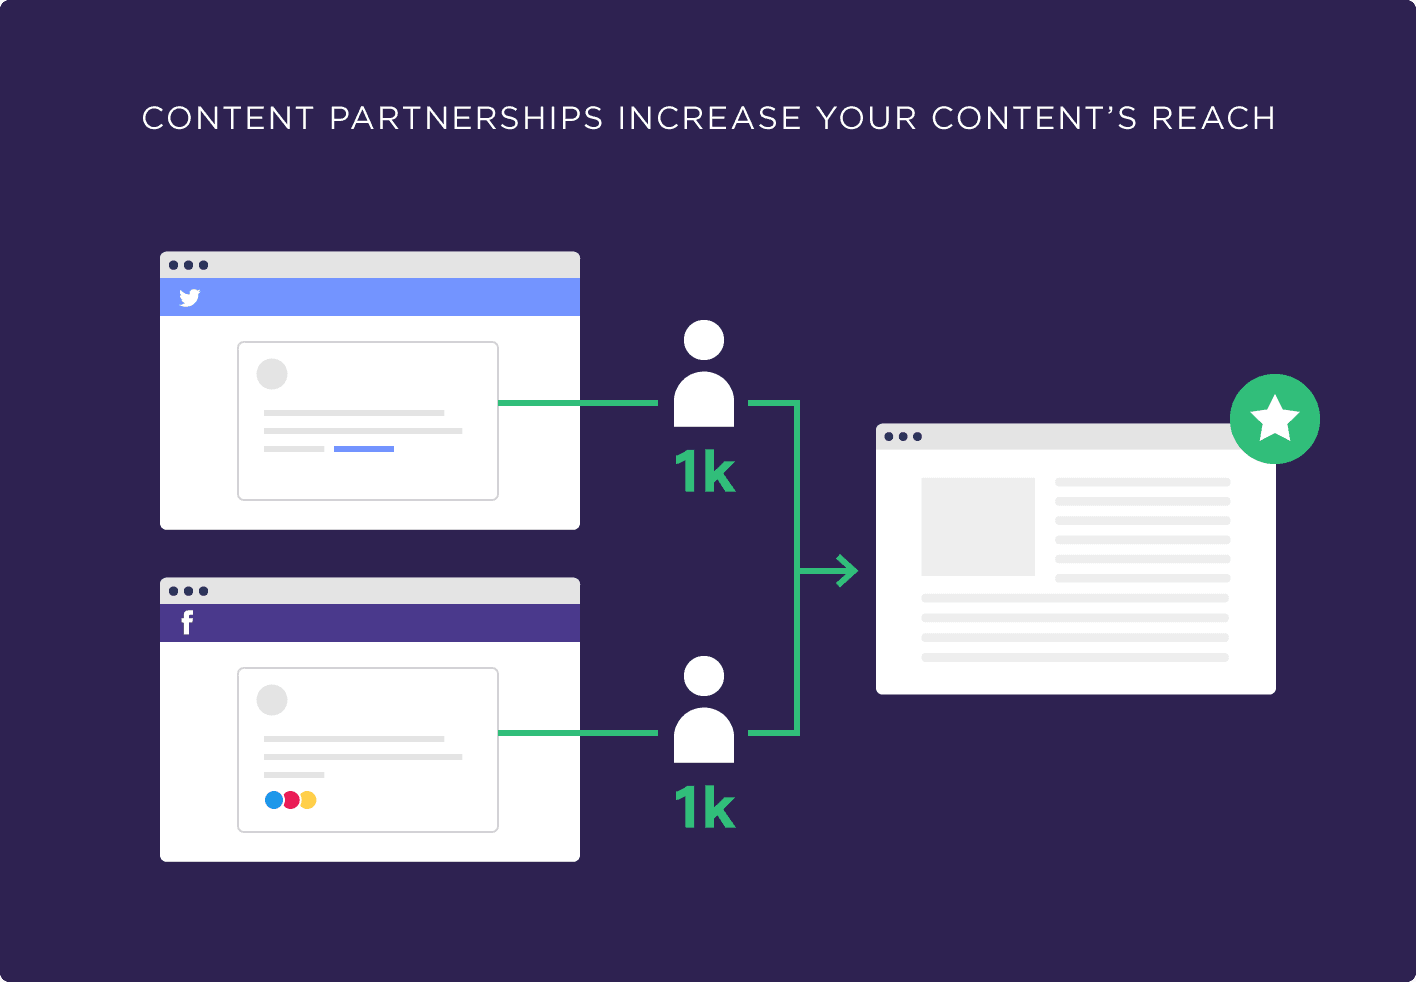 Content partnerships increase your content's reach